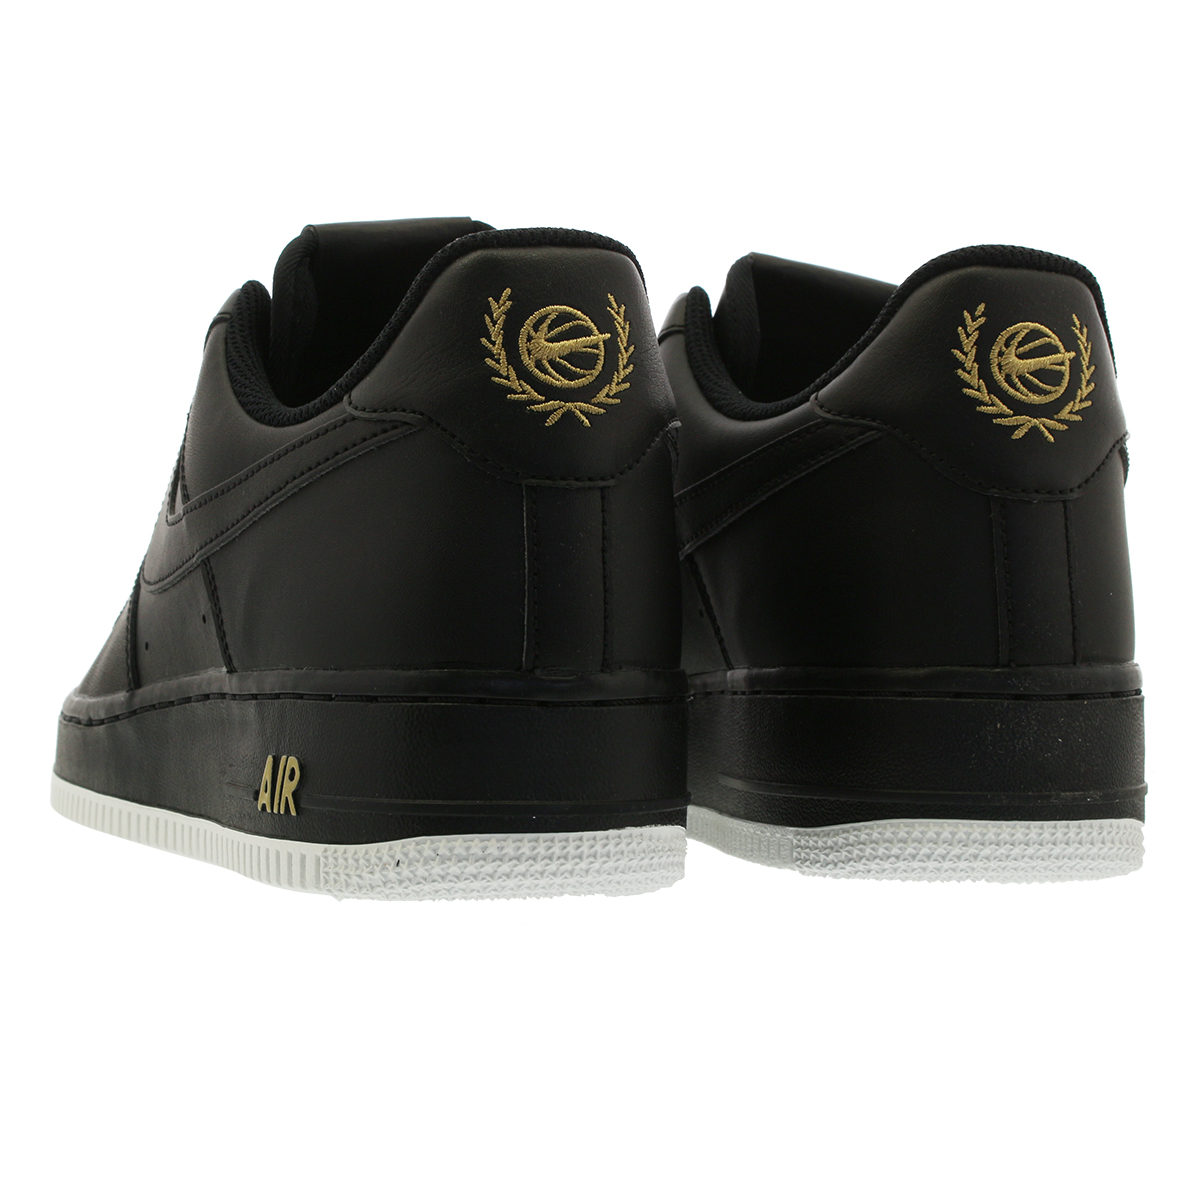 Air Force 1 '07 Nike Blackgoldwhite 8nN0mw